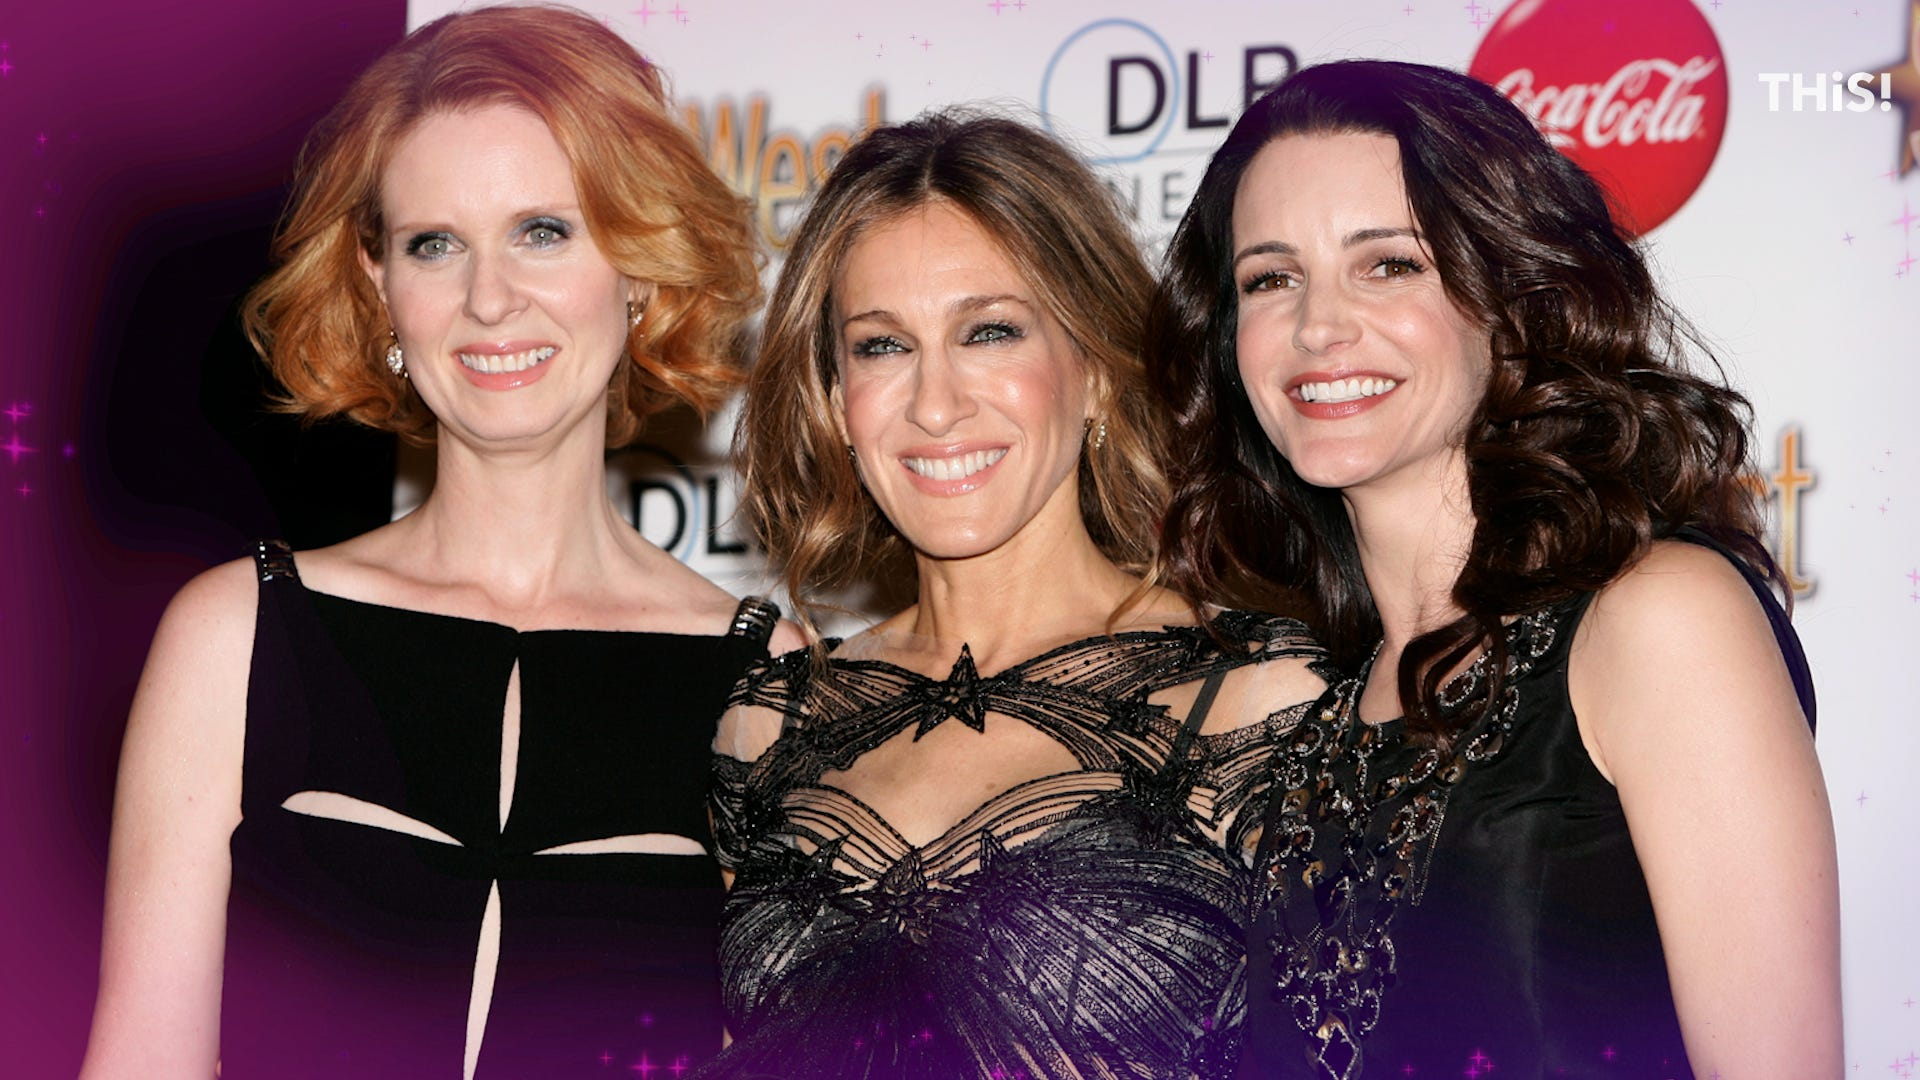 Sarah Jessica Parker comments on Kim Cattrall not joining 'Sex and the City' reboot